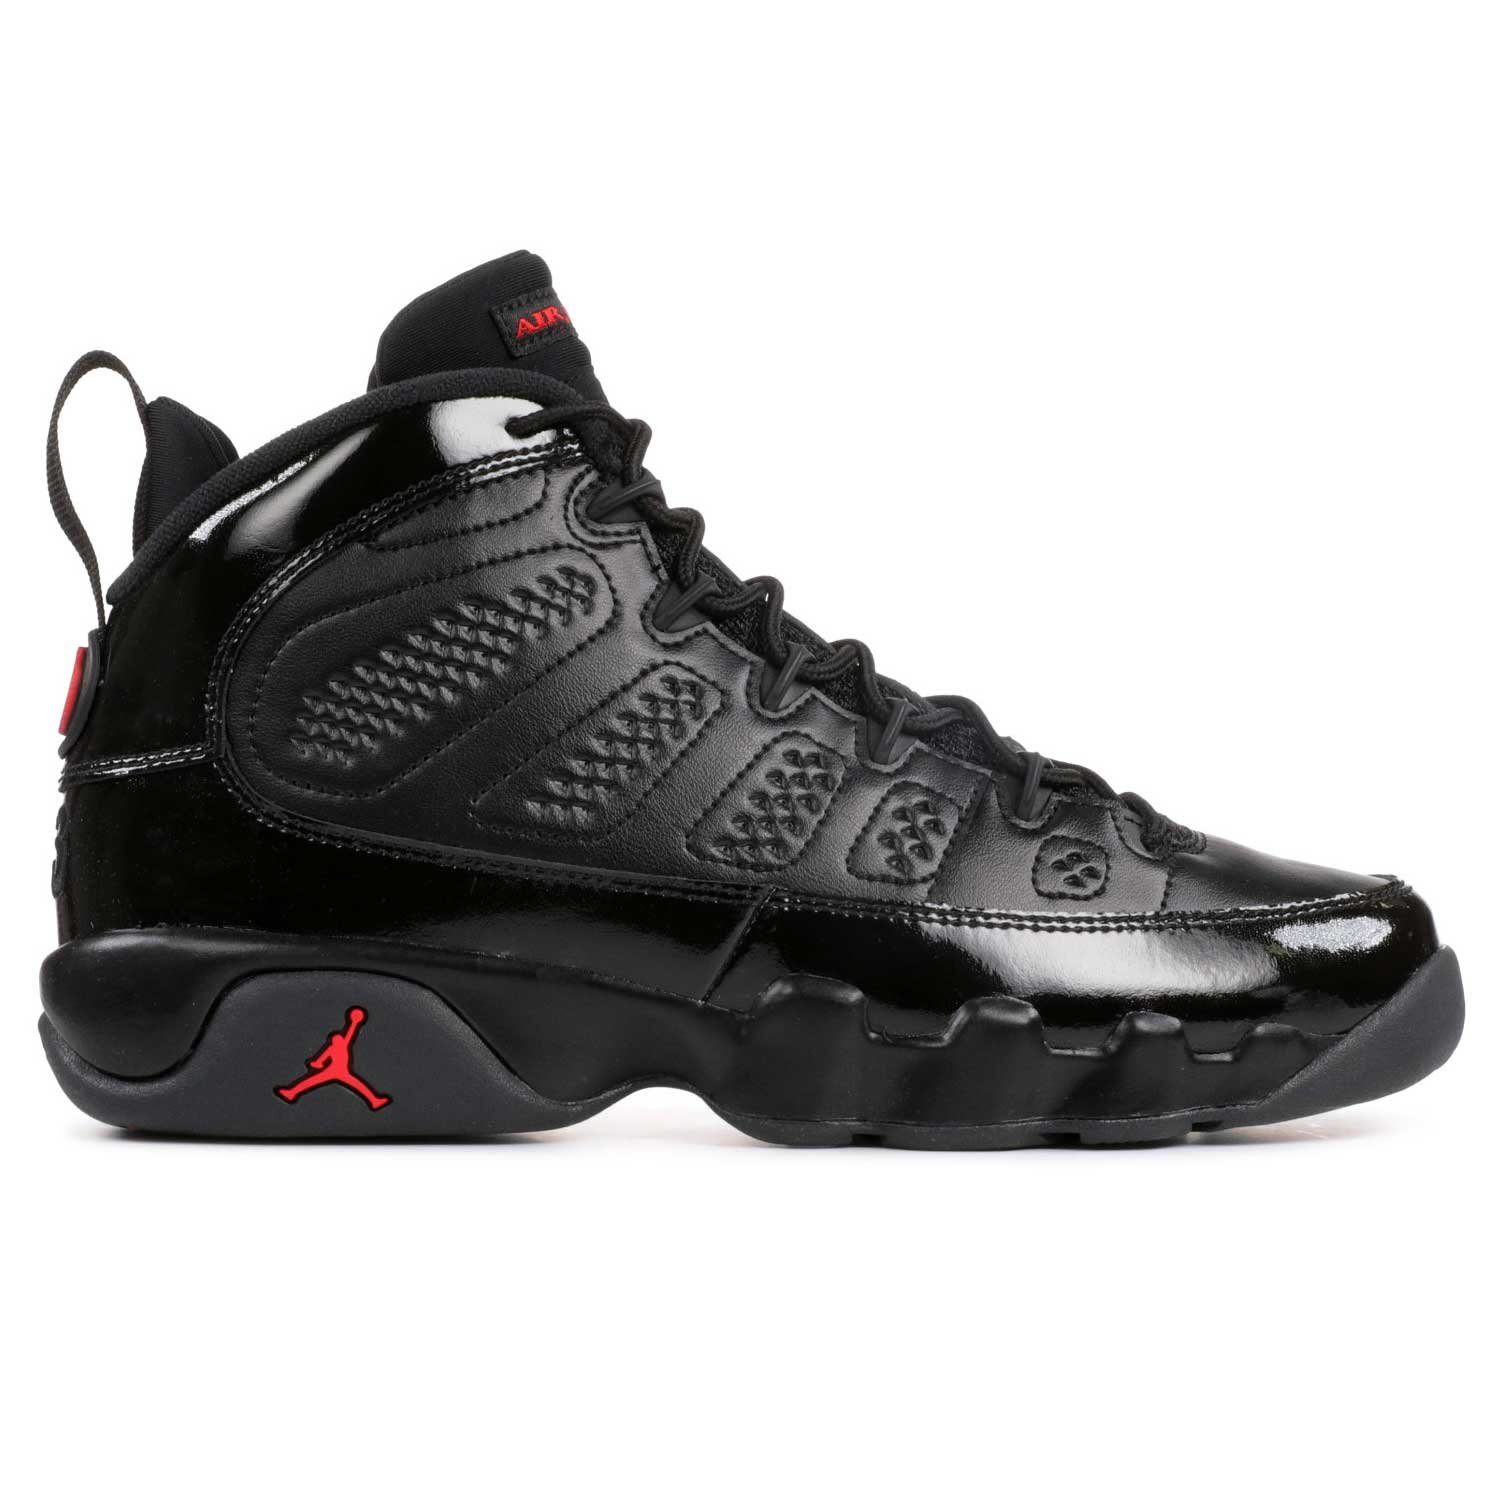 cheap for discount e3bab 0f98d Amazon.com   Air Jordan 9 Retro BG - 302359 014   Sneakers